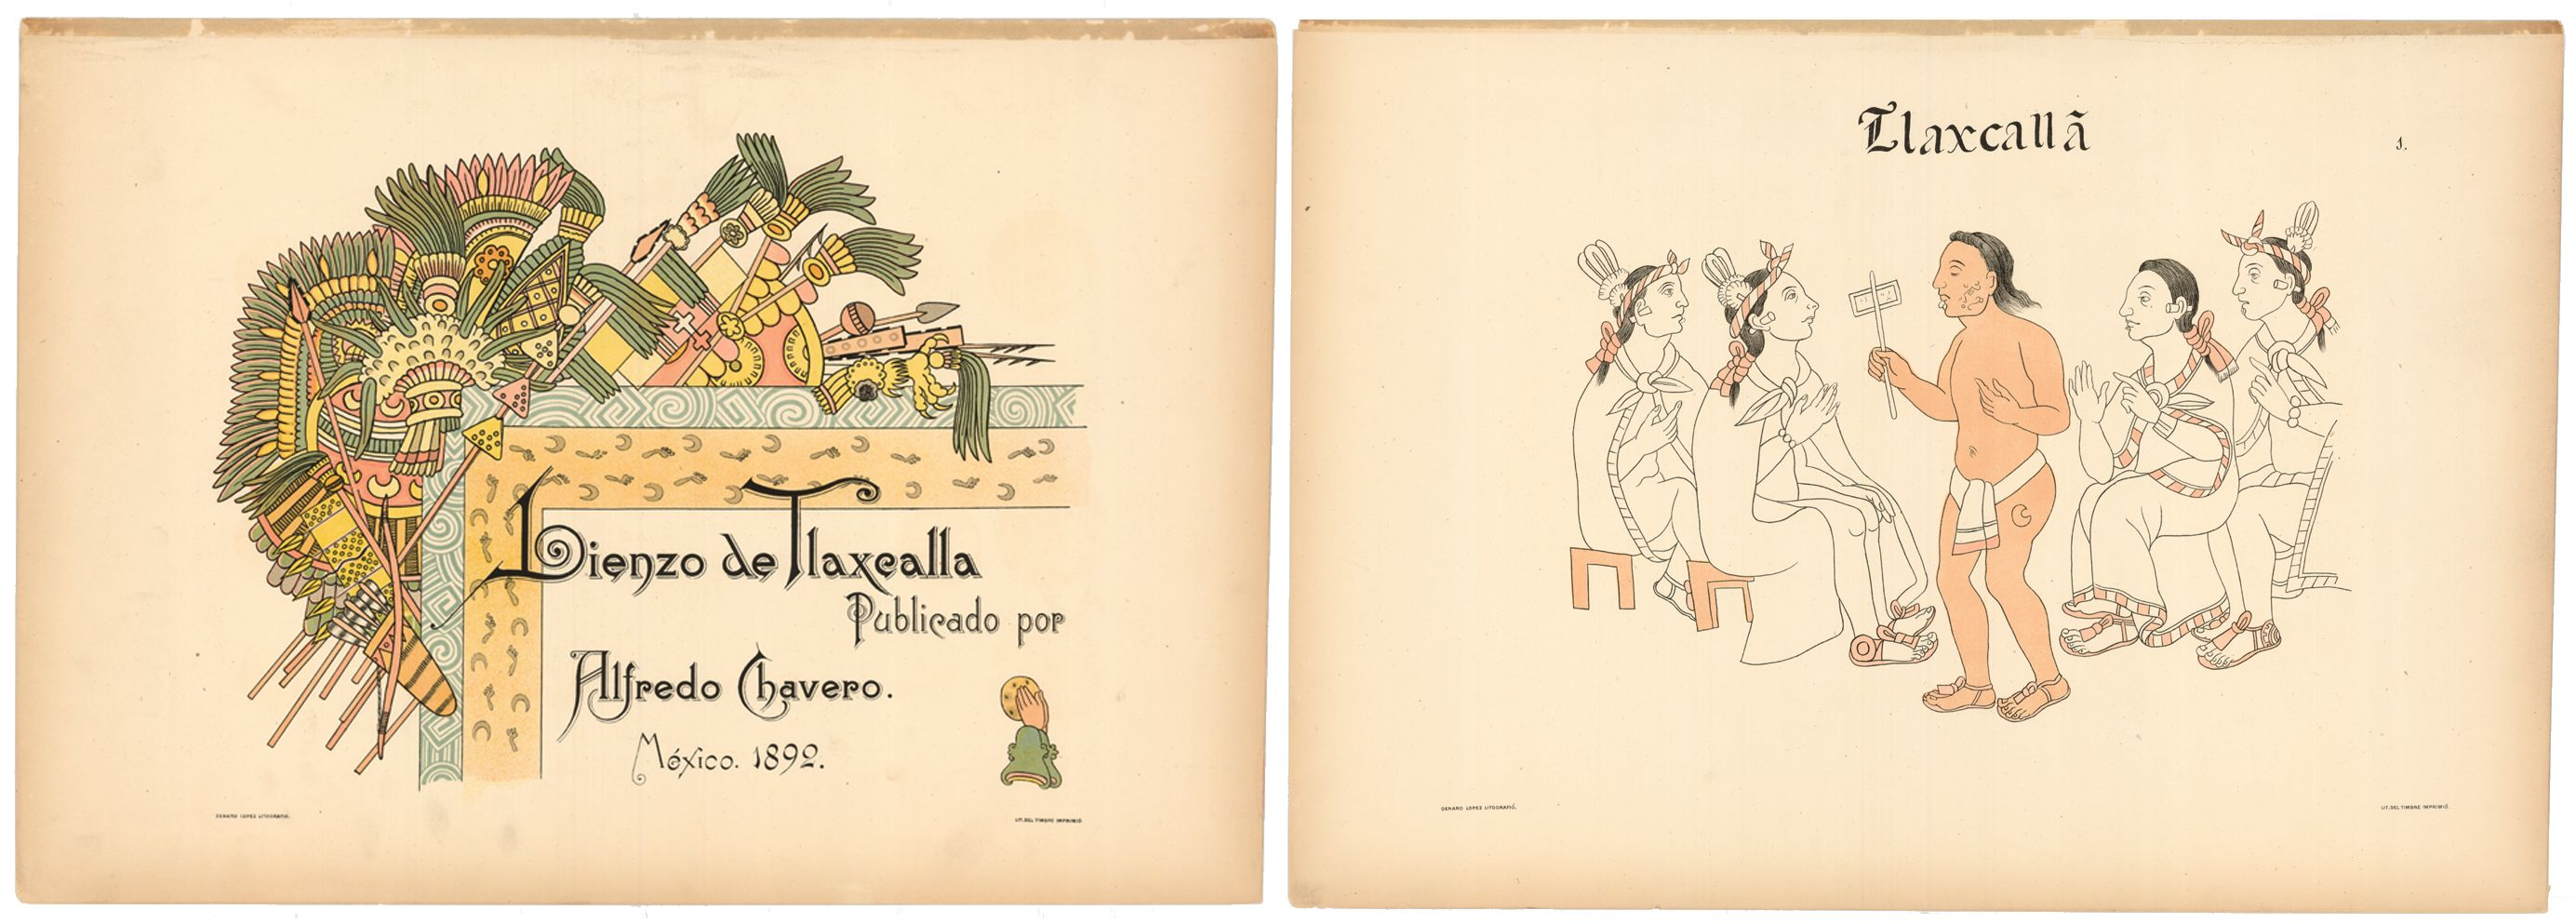 FIGURE 7. Title Plate (left) and Plate 1 (right) of the Lienzo de Tlaxcala, from the _Homenaje á Cristóbal Colón_.